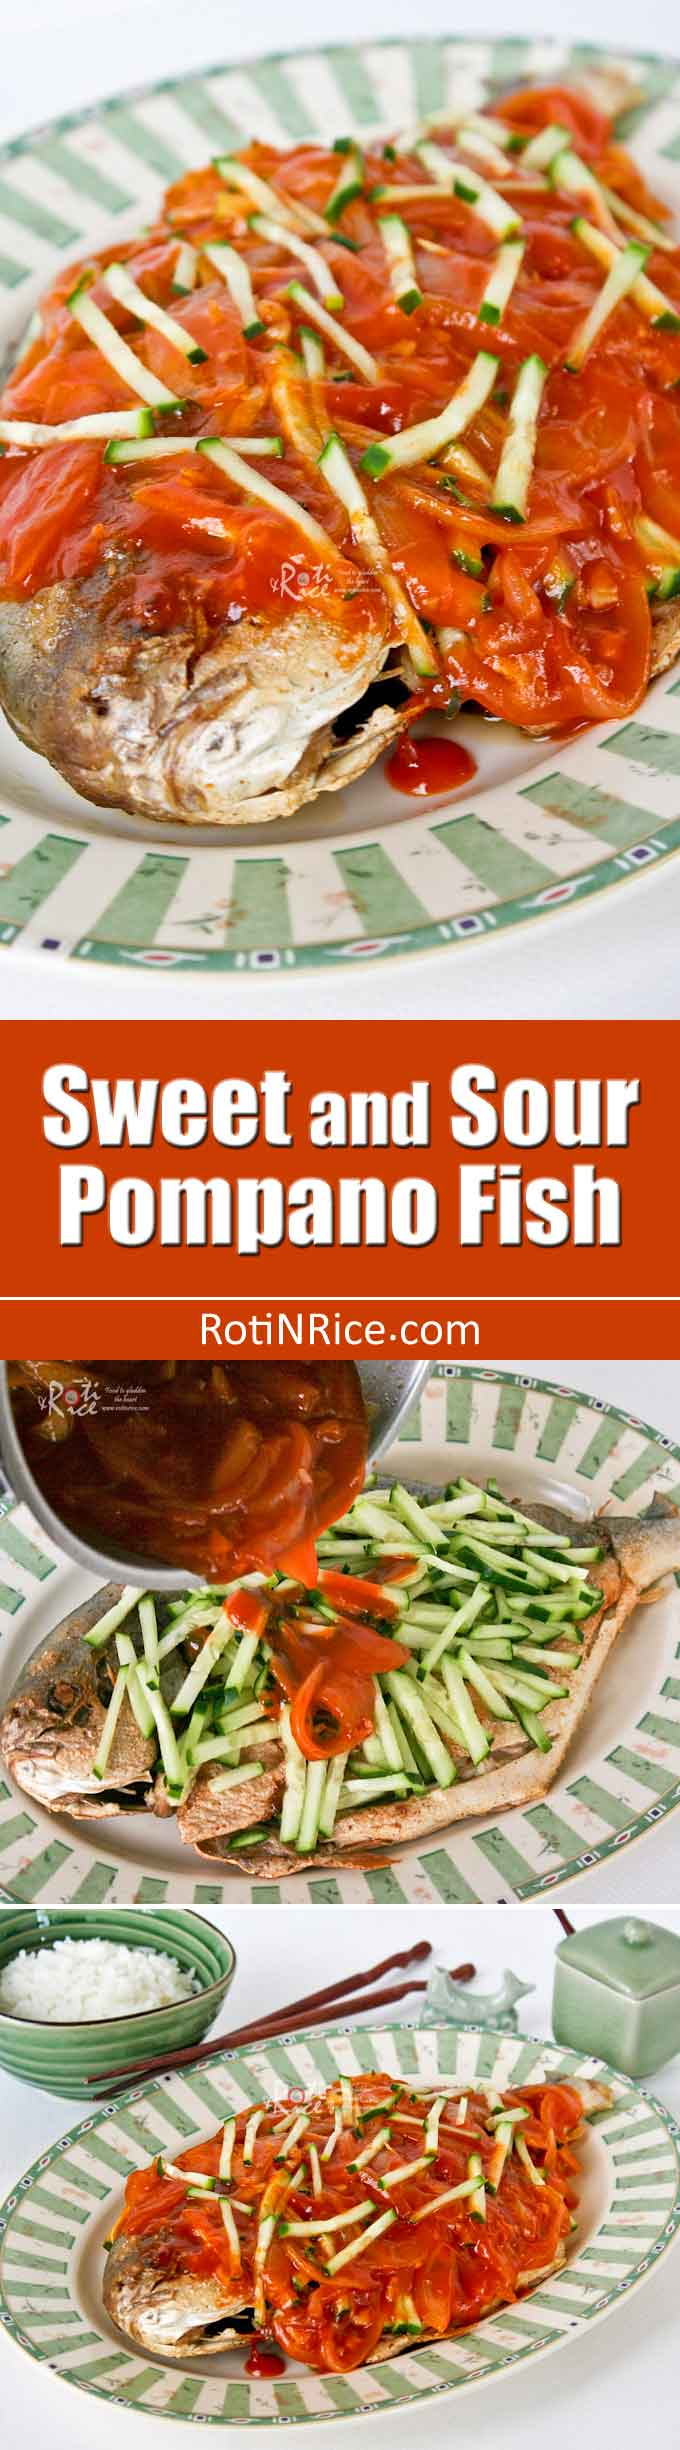 Sweet and Sour Pompano Fish with homemade sweet and sour sauce garnished with julienned cucumber. So easy yet so tasty. Perfect with a bowl of steamed rice. | RotiNRice.com